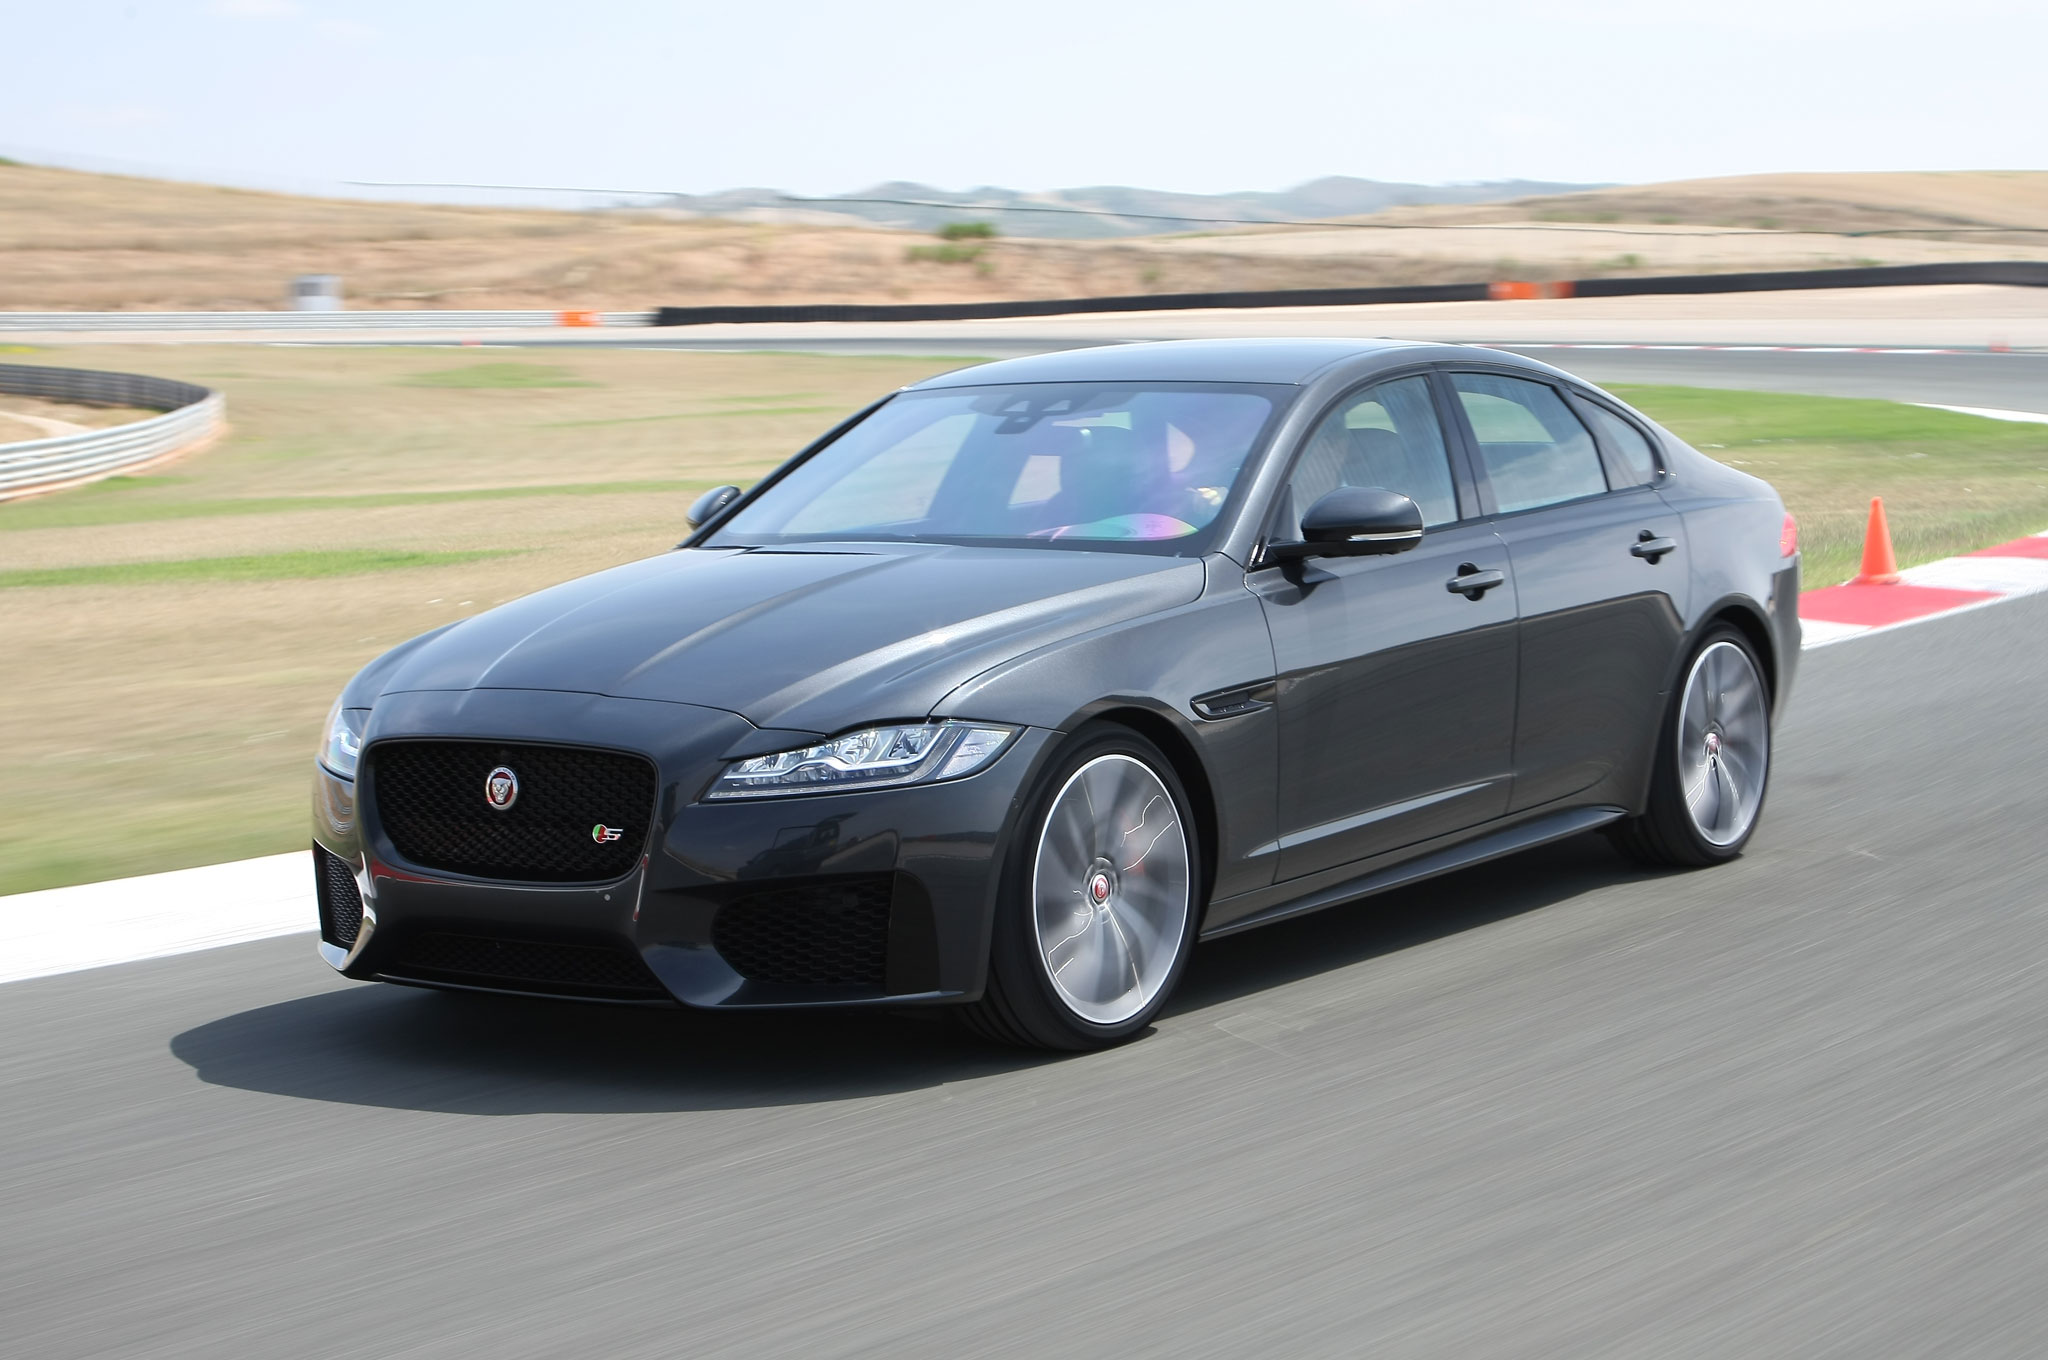 three in show xf review at front motion jaguar for news sport track sale awd more quarter